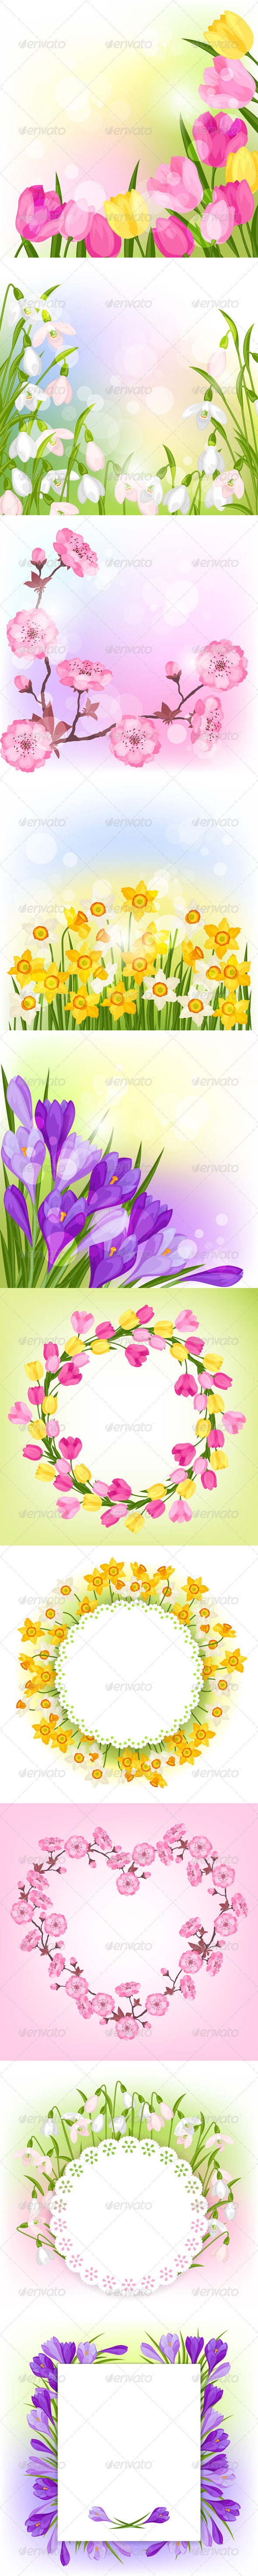 Spring Flowers Natural Backgrounds